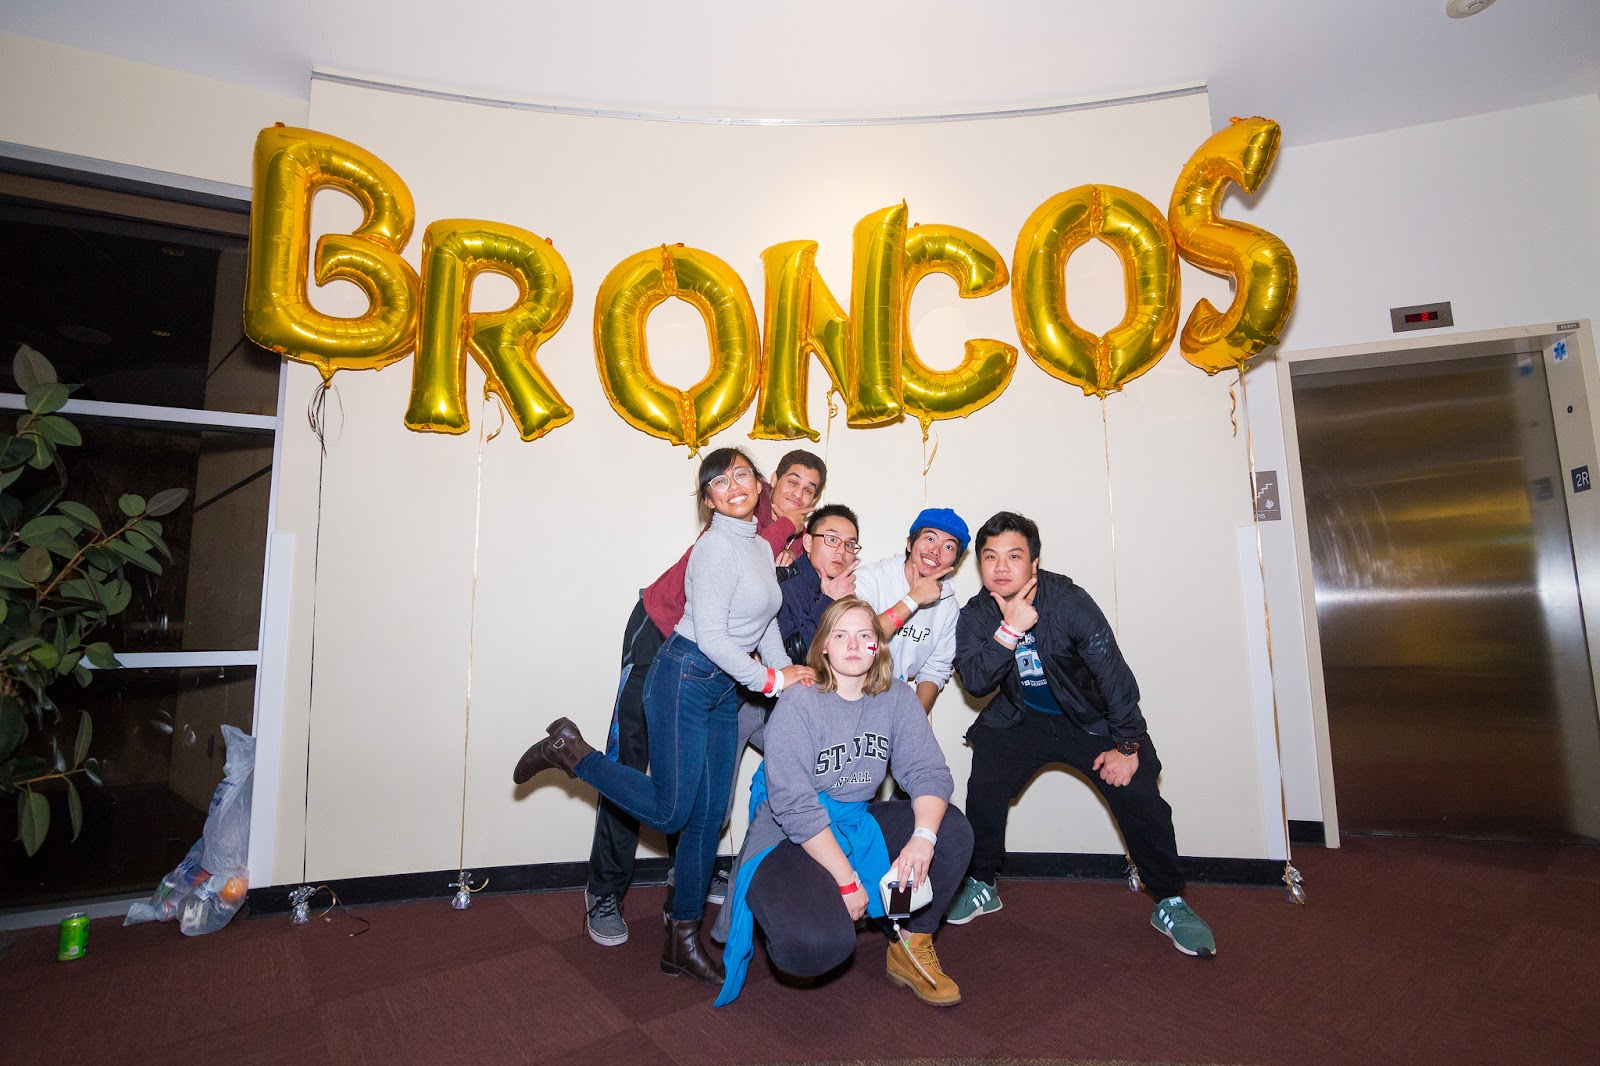 """Students posing under balloons that read """"BRONCOS."""""""